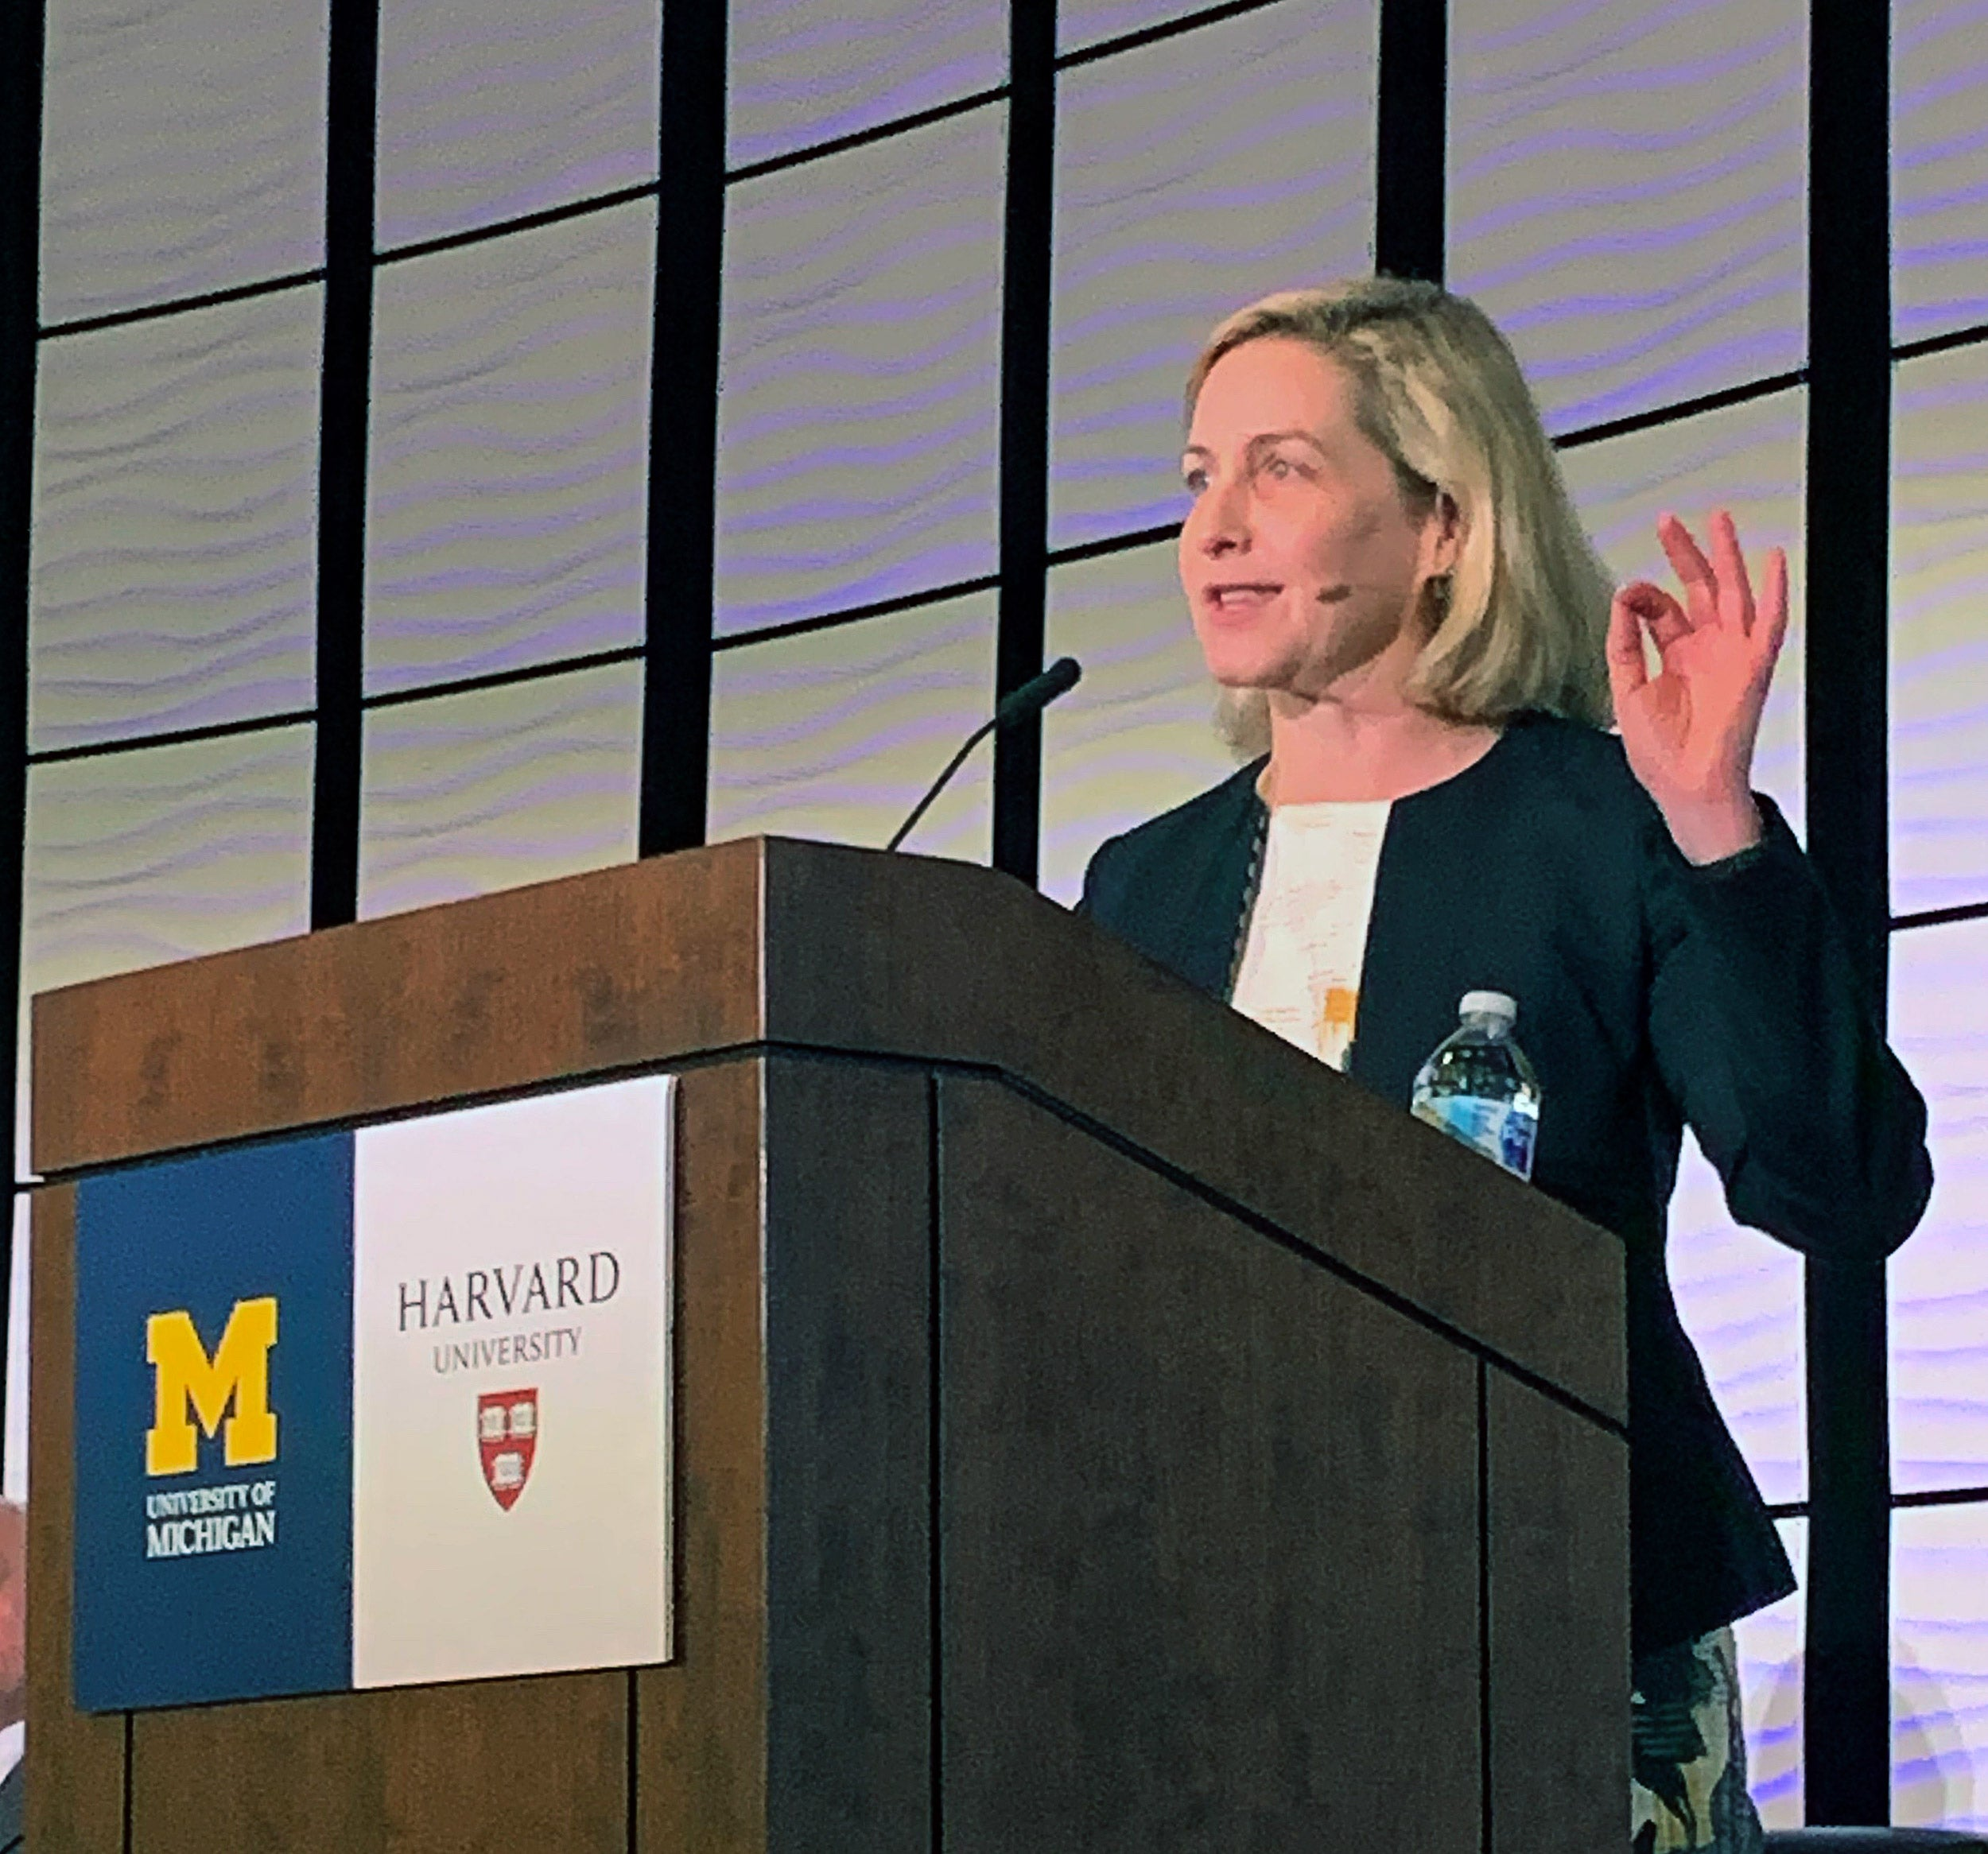 Meredith Rosenthal from the Chan School speaking at the University of Michigan